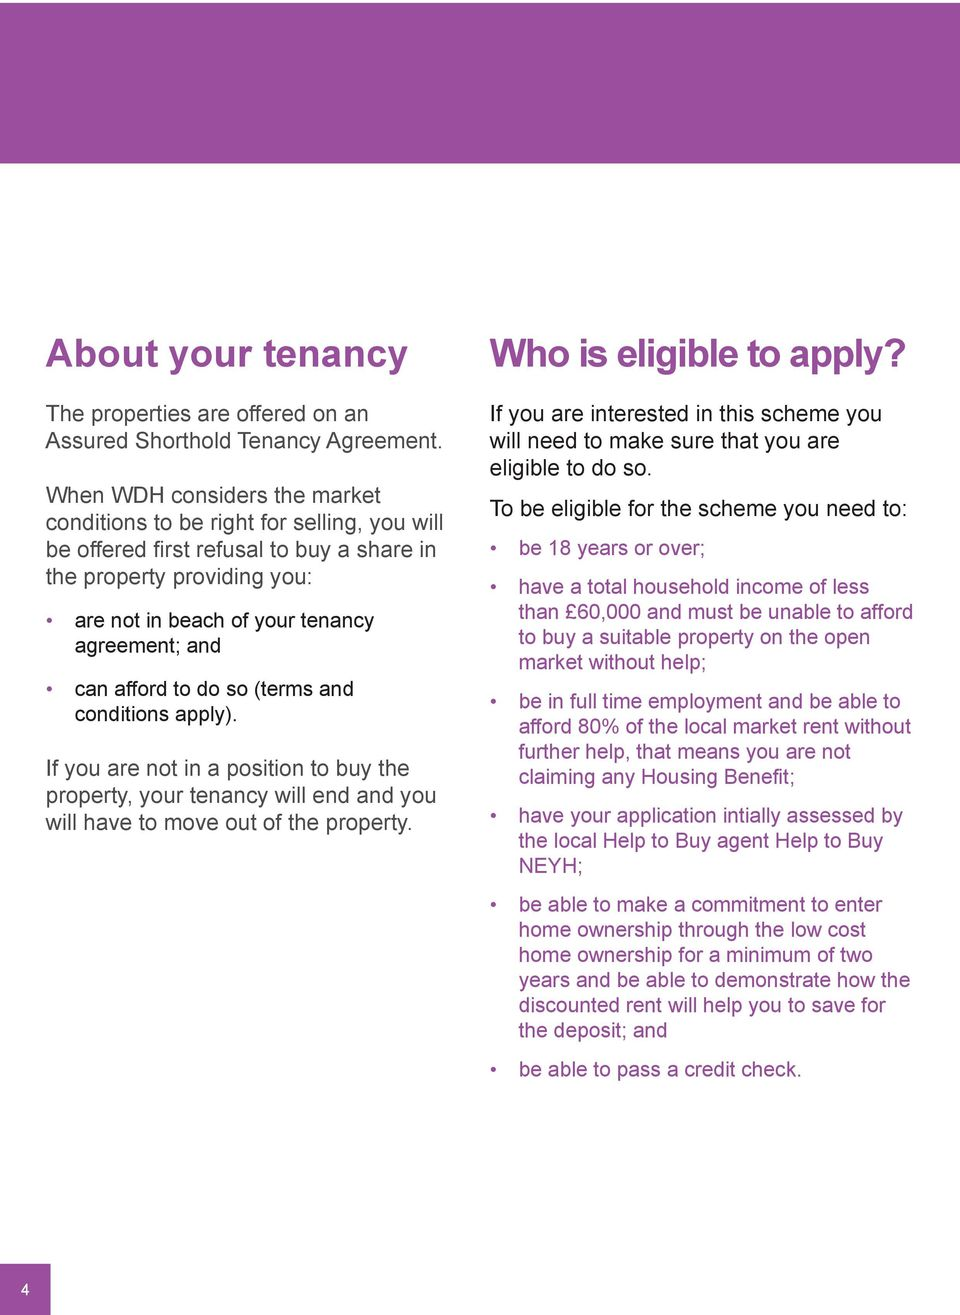 afford to do so (terms and conditions apply). If you are not in a position to buy the property, your tenancy will end and you will have to move out of the property. Who is eligible to apply?